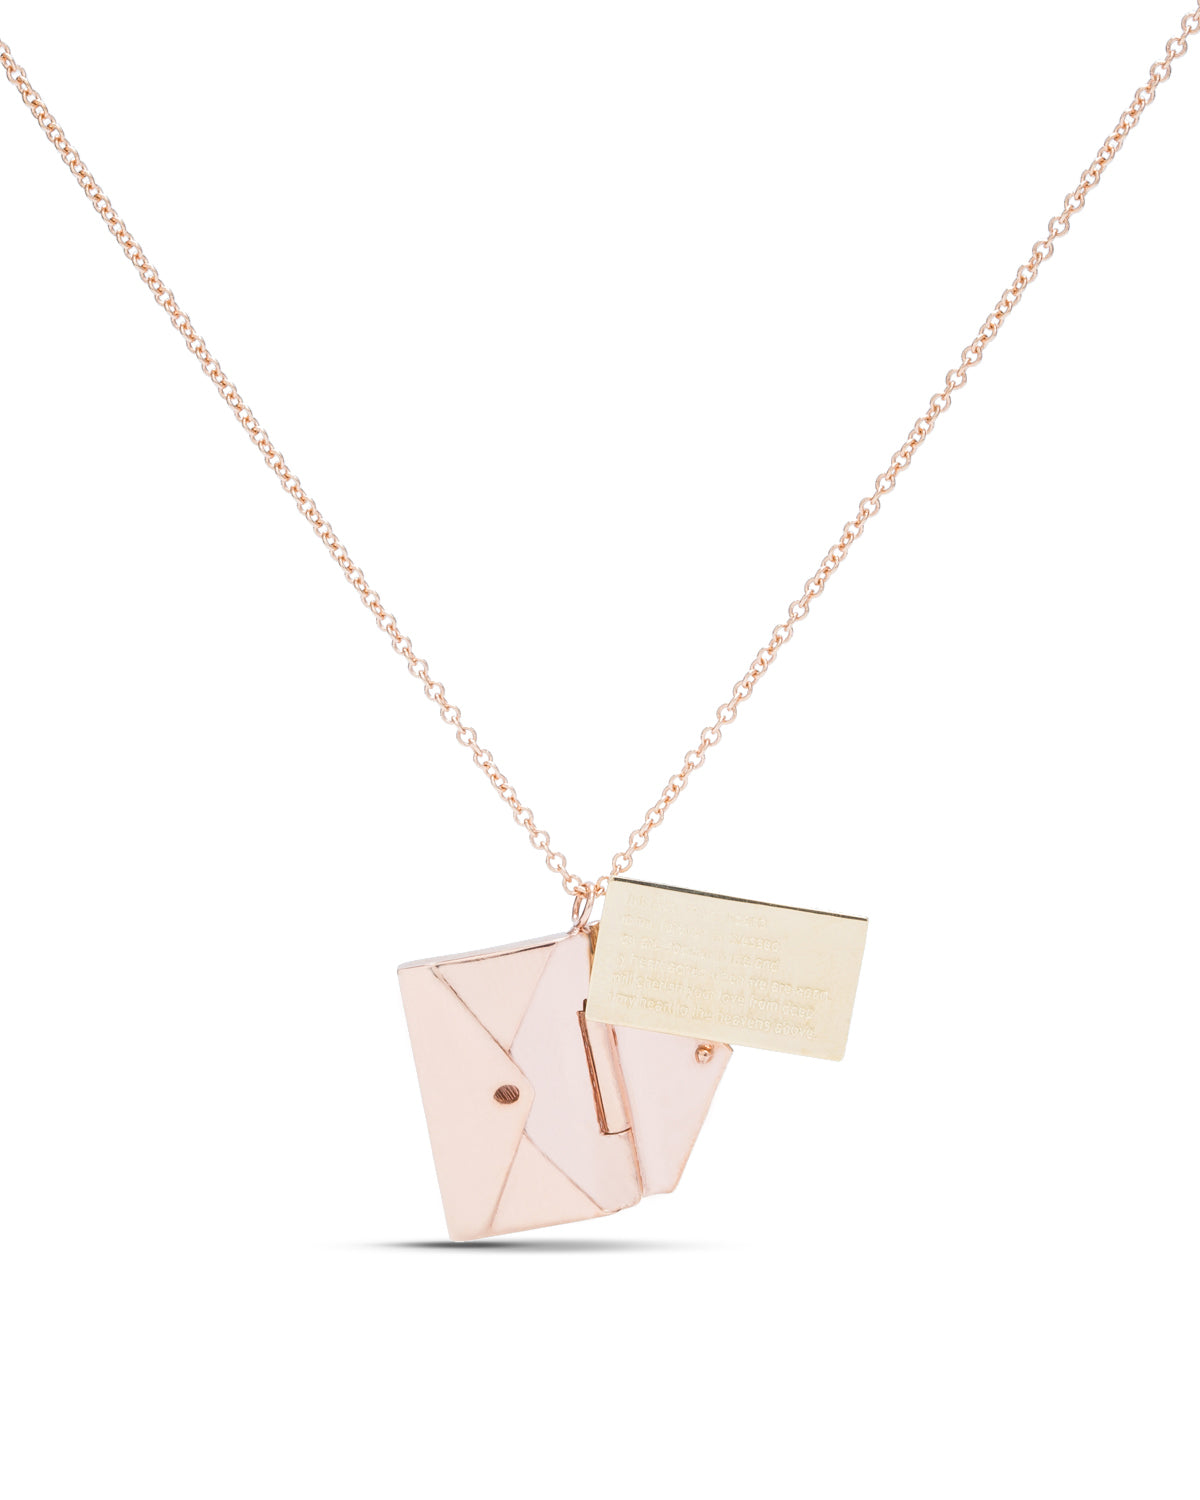 Rose Gold Love Letter - Charles Koll Jewellers